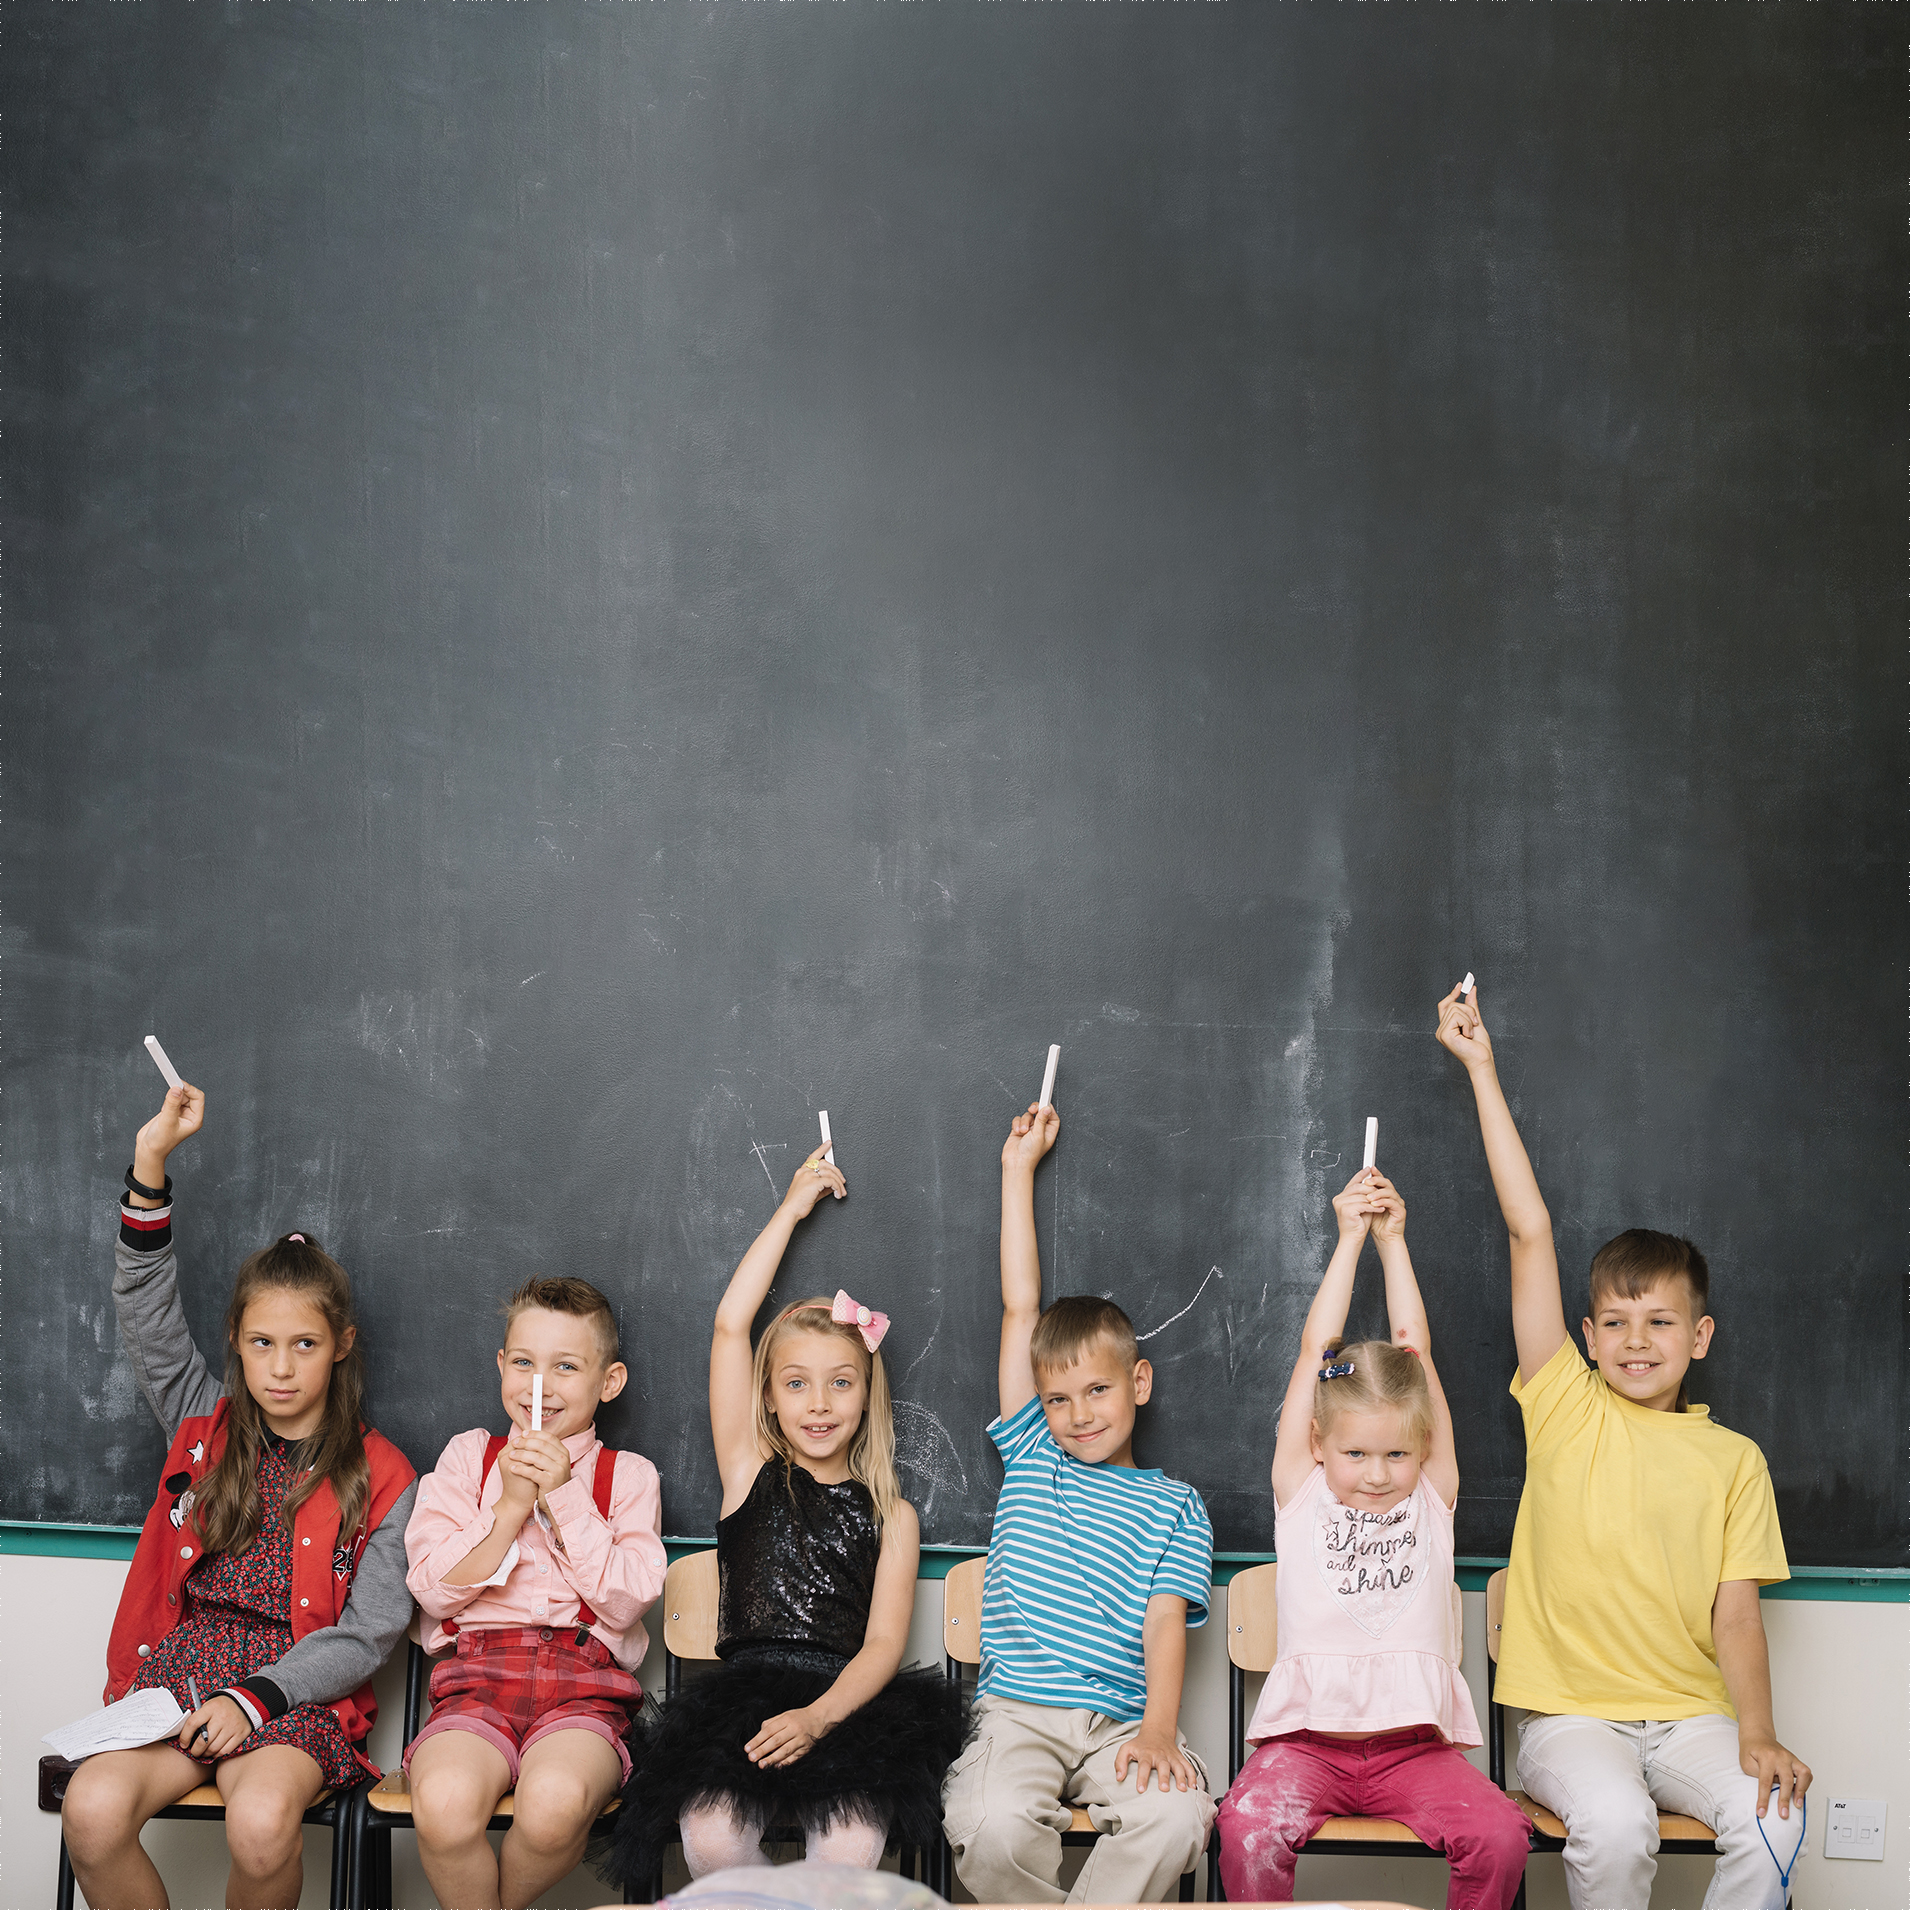 A group of children sitting in a chair, each one of them is holding a chalk and their background is a wide blackboard